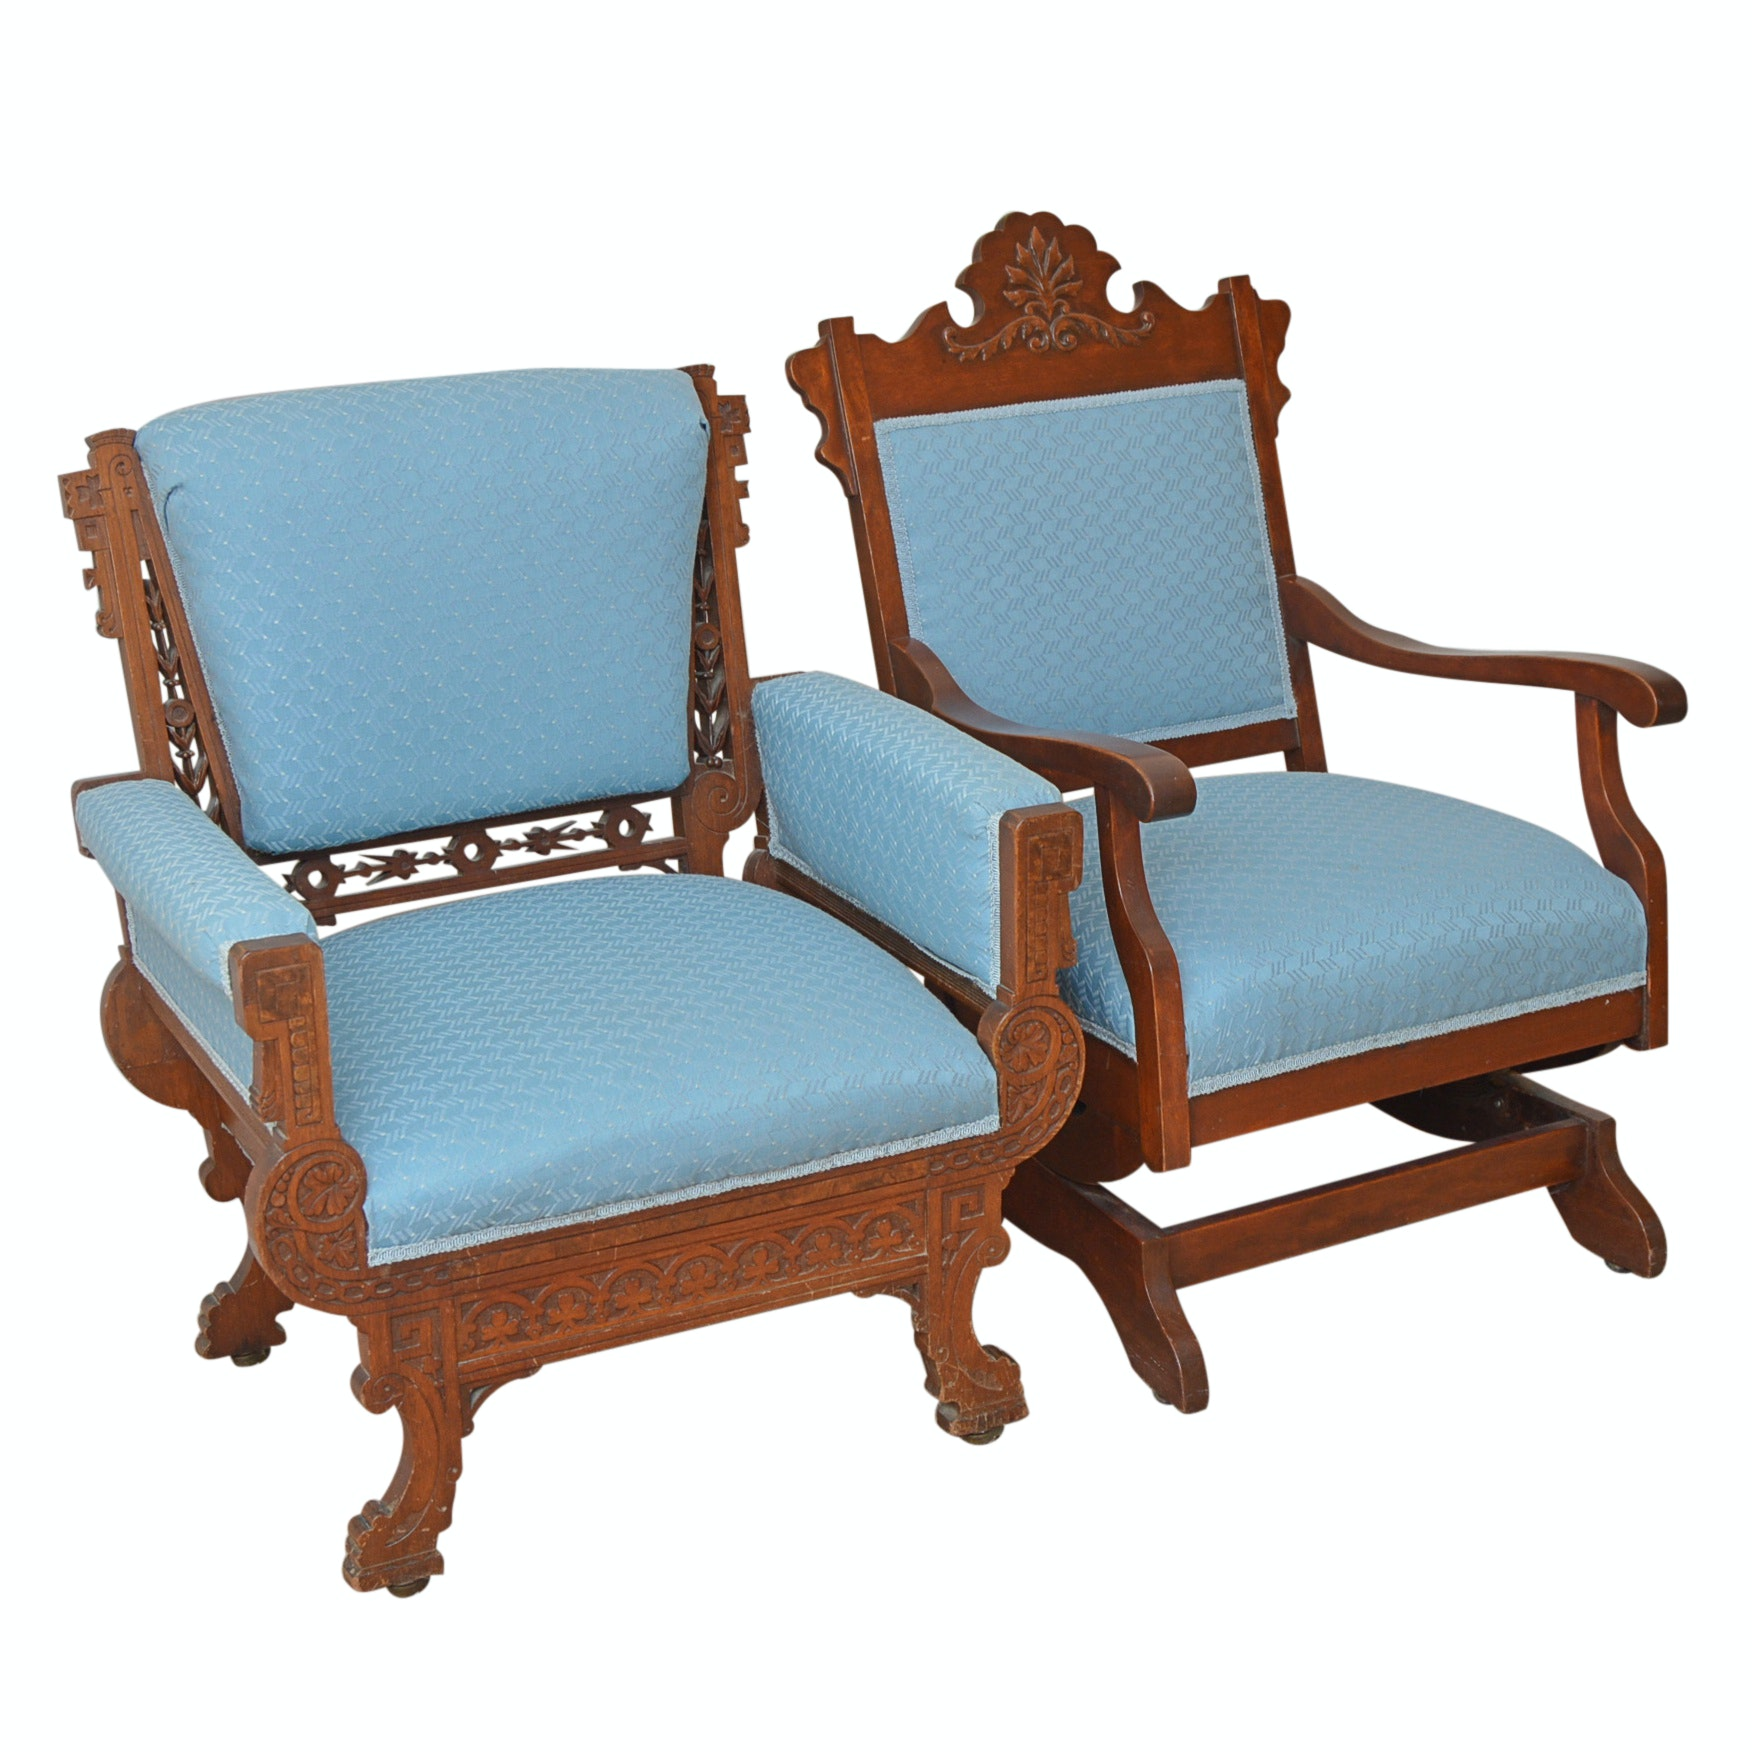 Pair of Victorian Renaissance Revival Chairs